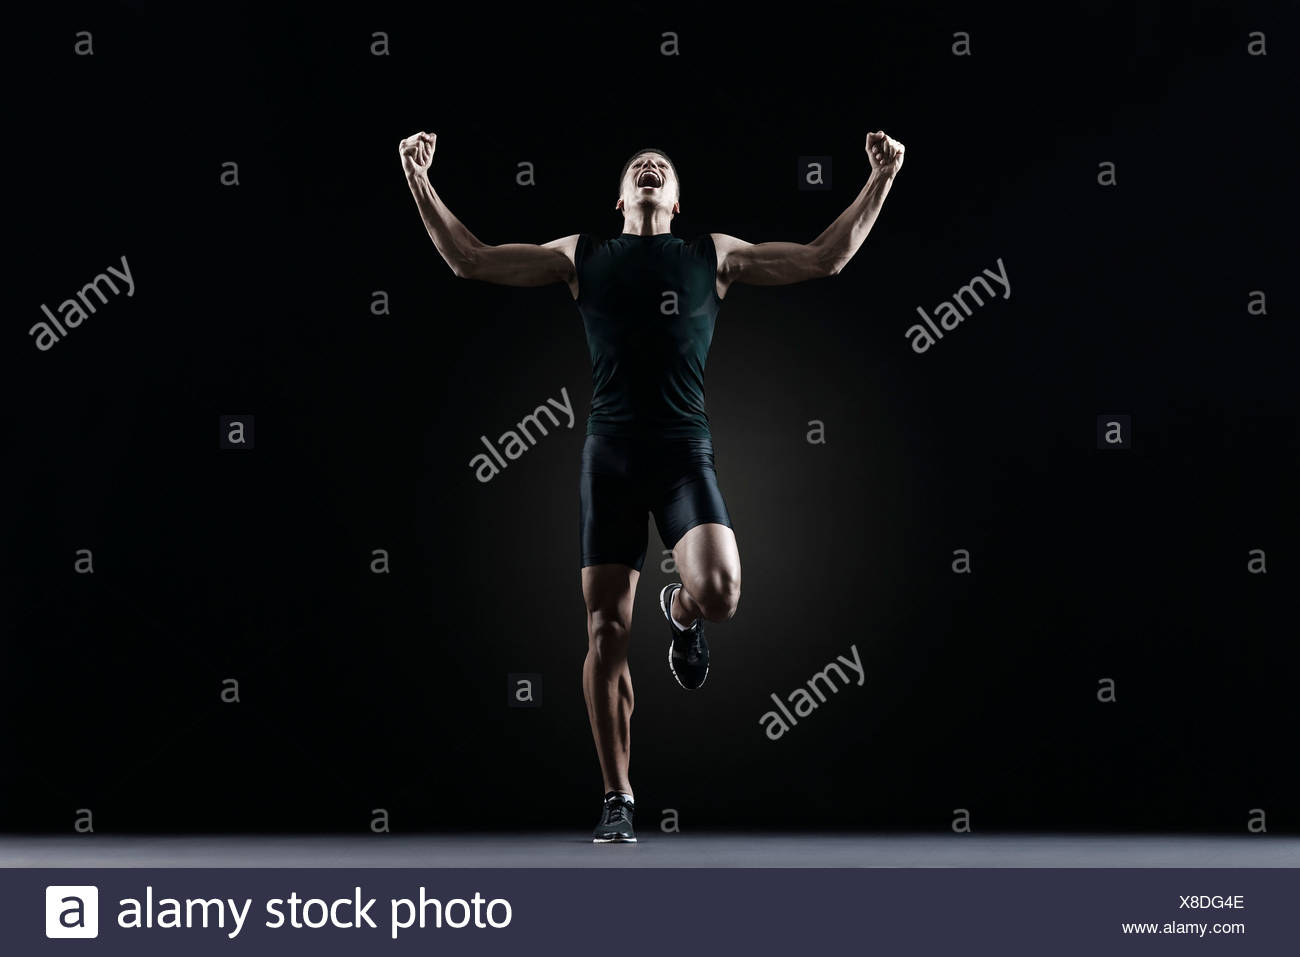 Male athlete flexing arms and shouting - Stock Image